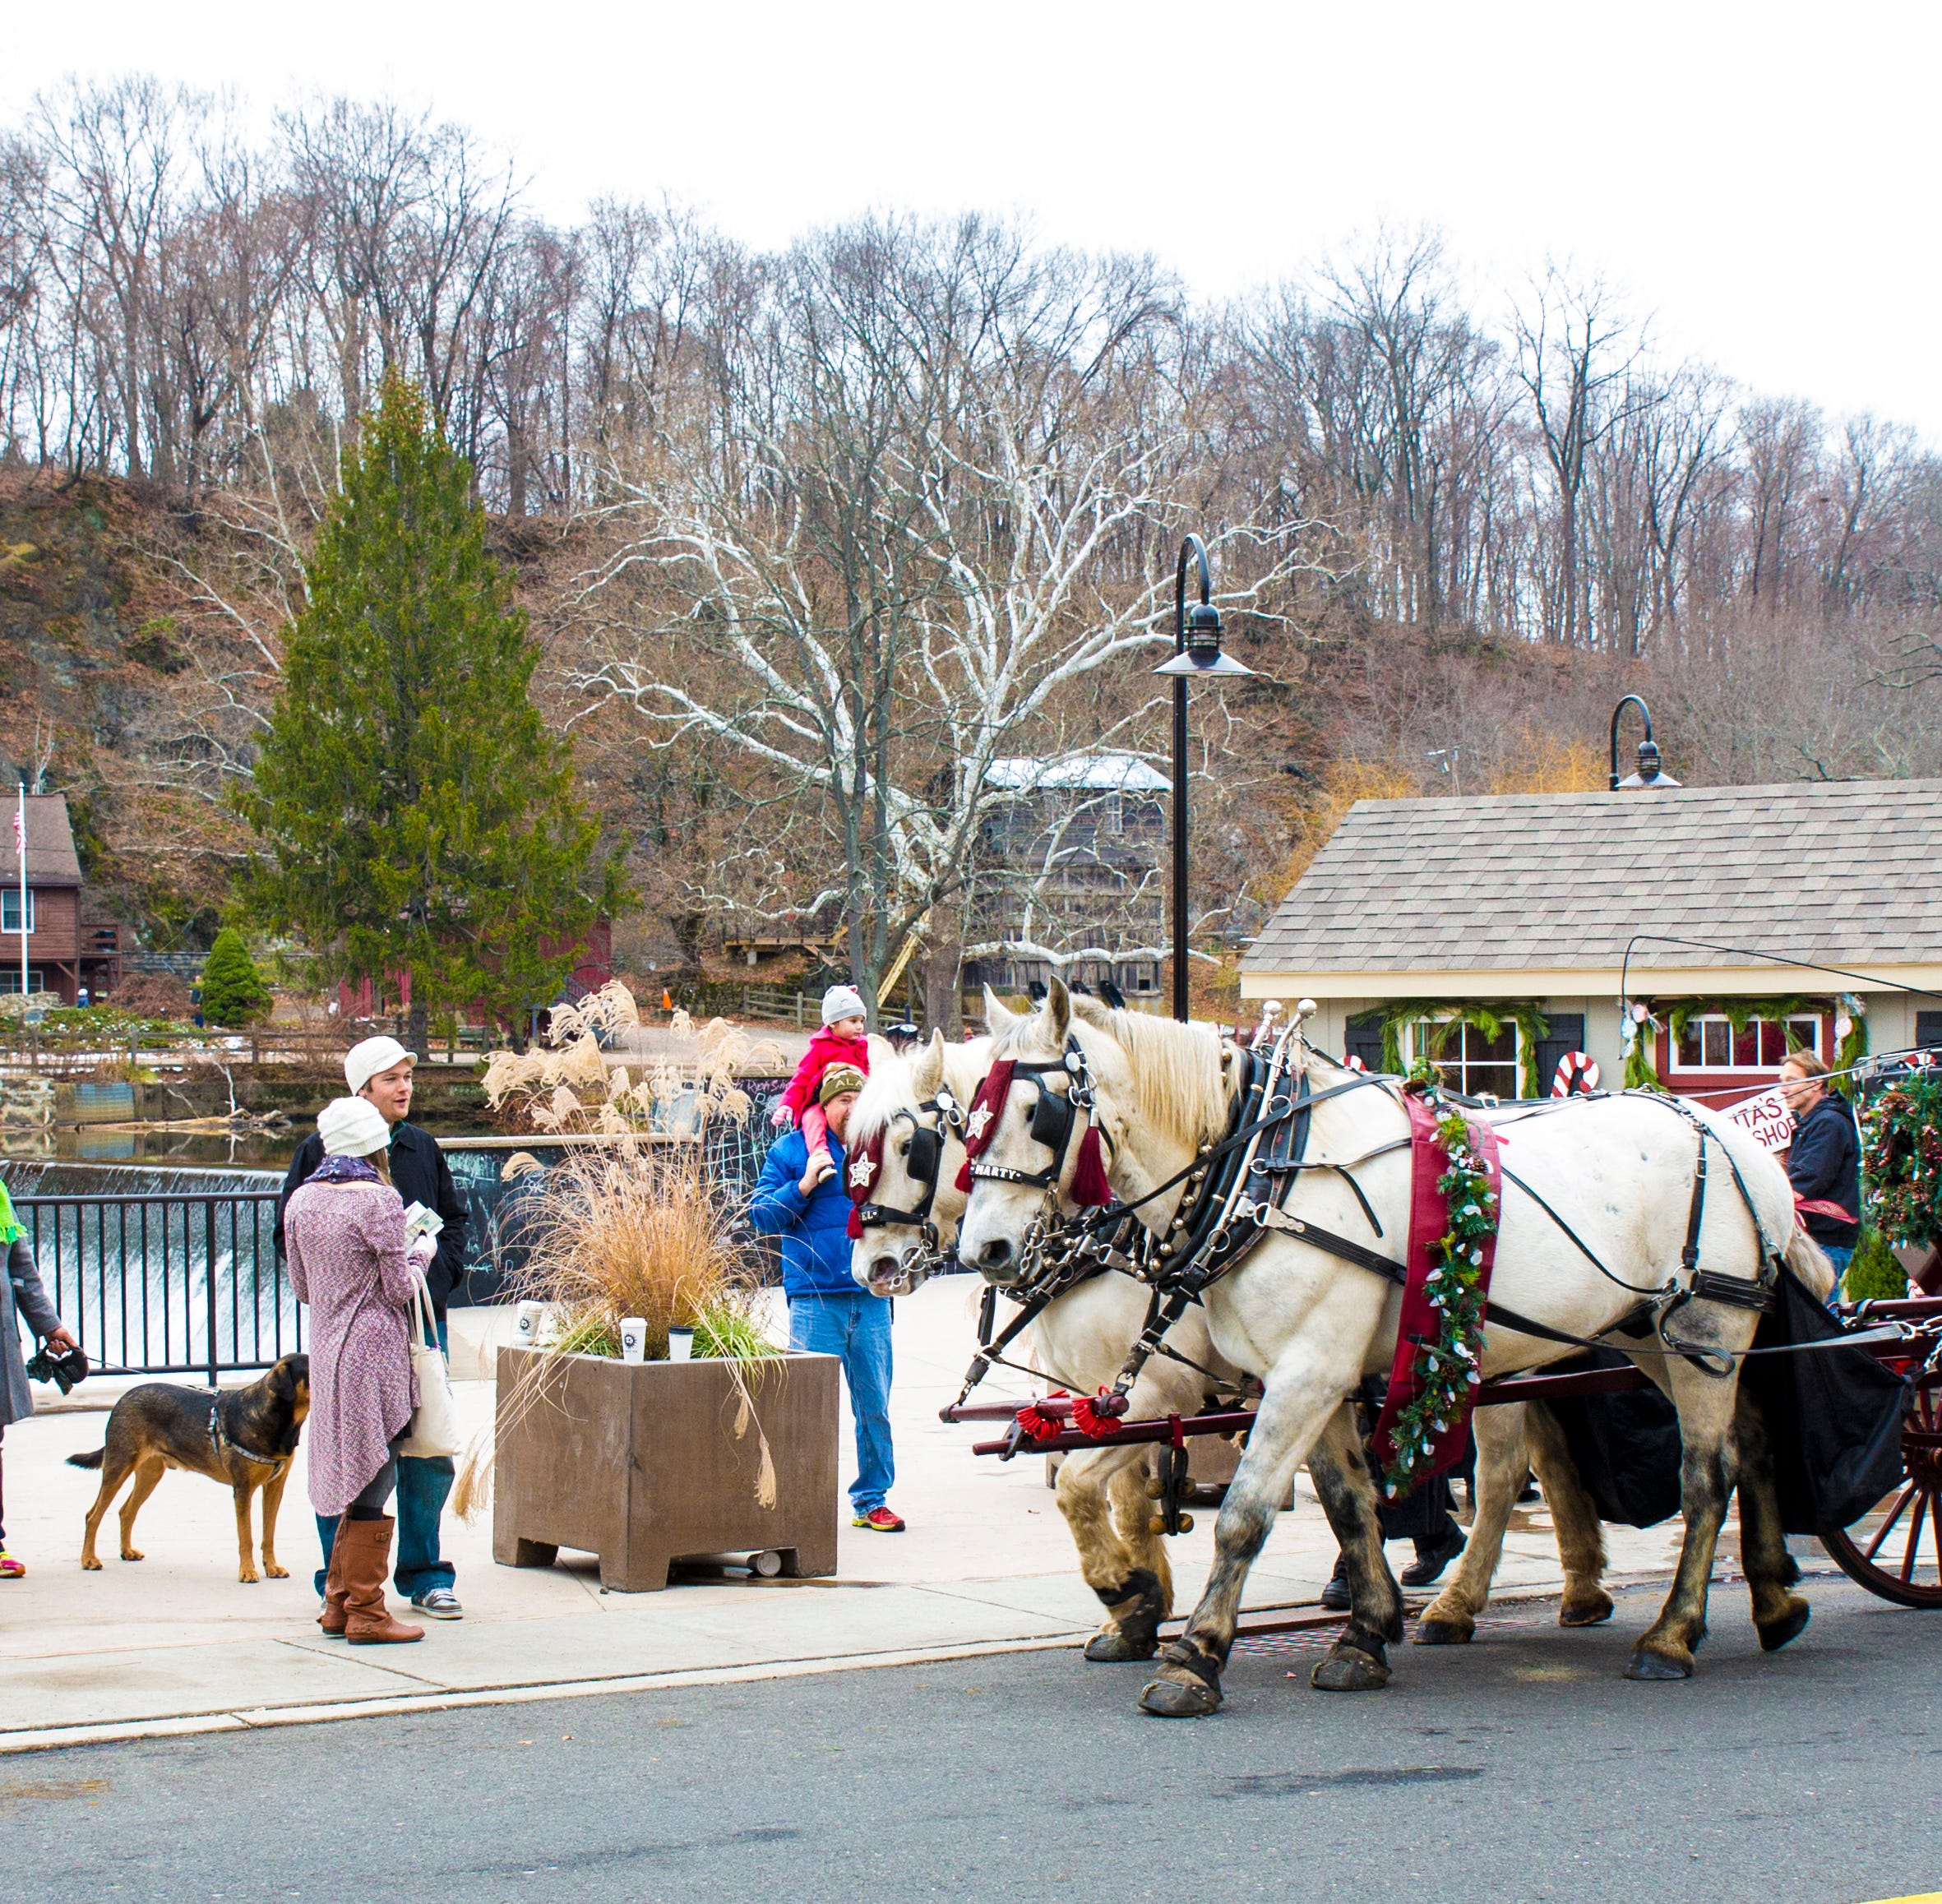 Horse-drawn carriage rides are part of the old-fashioned fun during Dickens Days in Clinton.